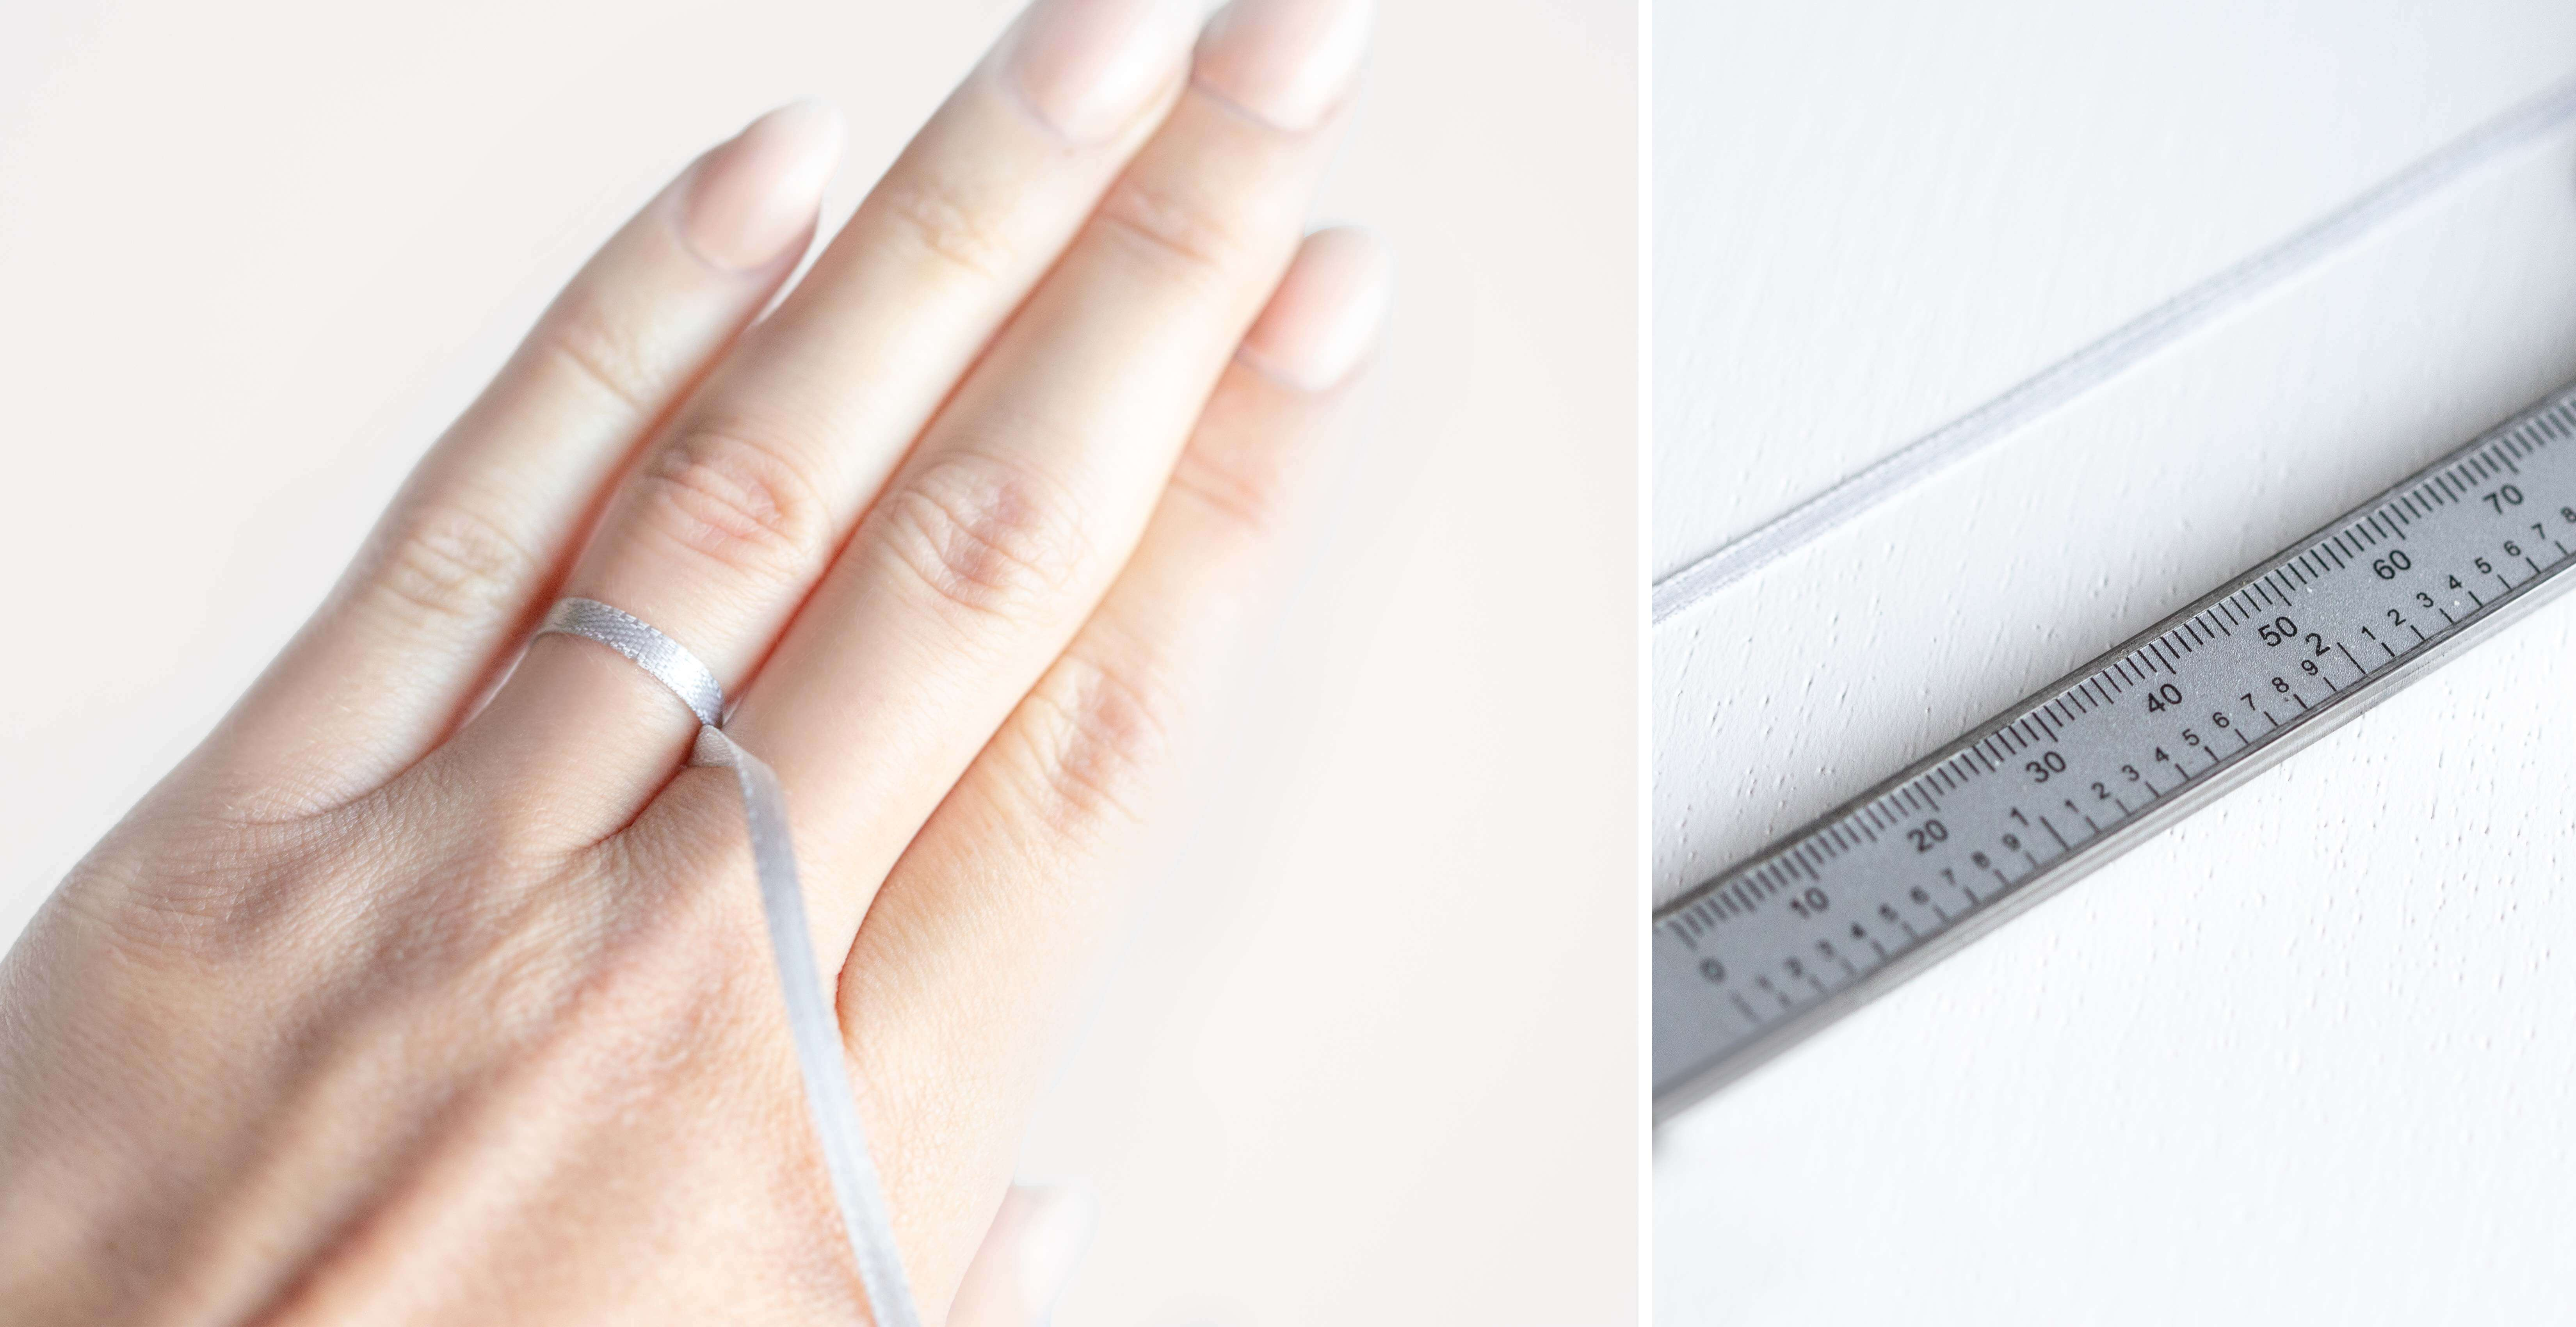 A ribbon tied around a finger and then compared next to a ruler to determine ring size.